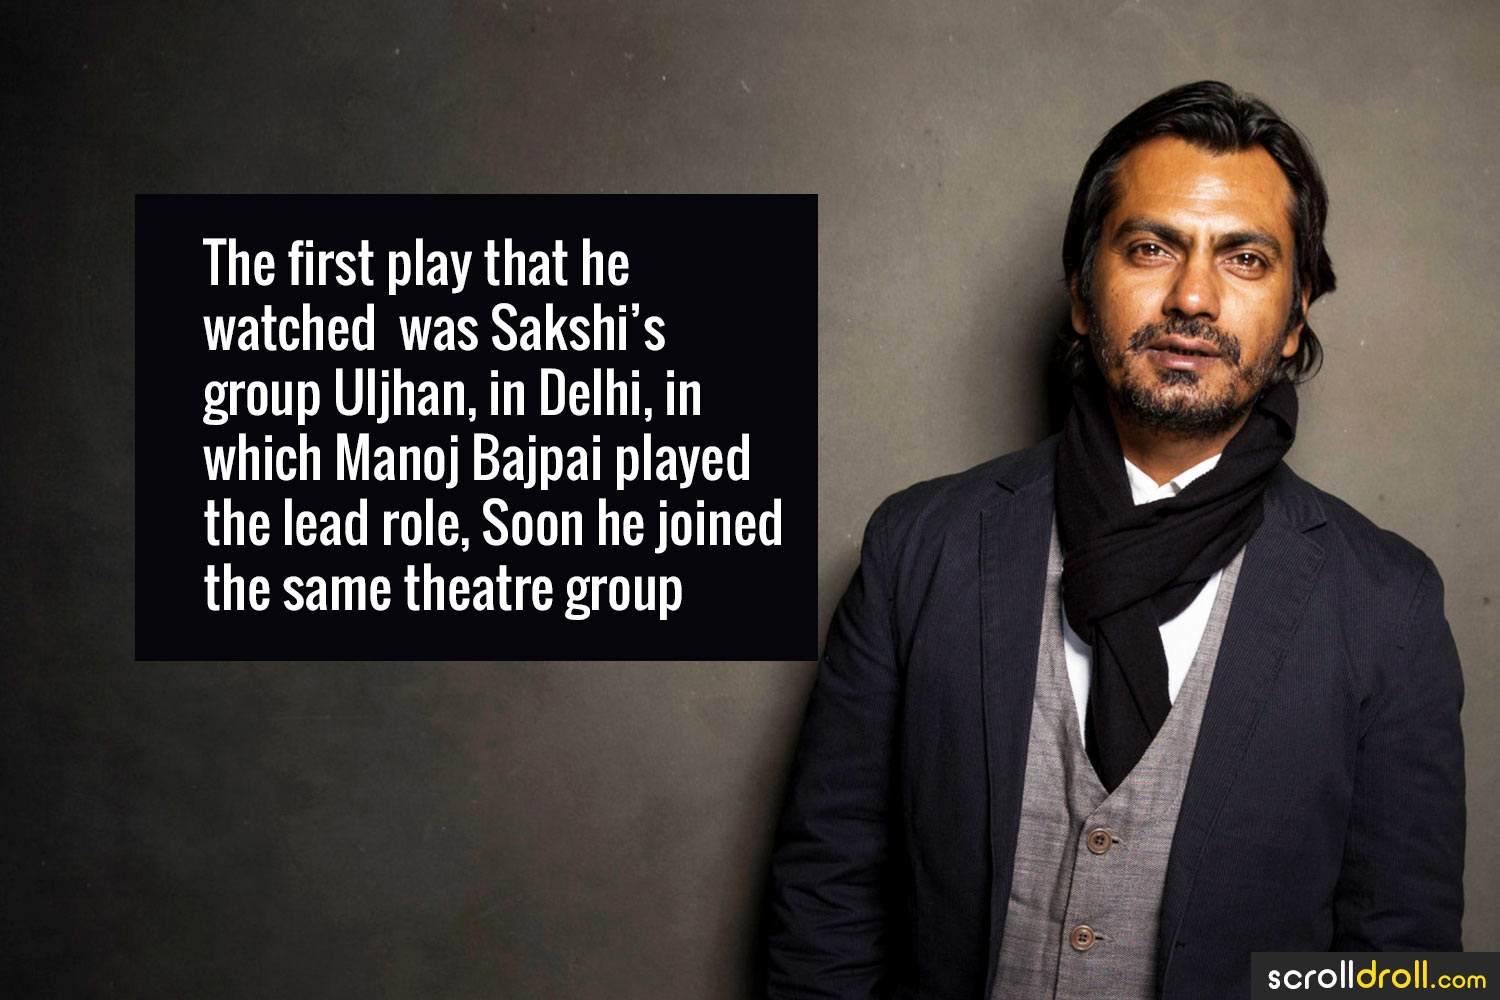 Facts about Nawazuddin Siddique-The first play that he watched was Sakshi's group Uljhan'in delhi,in which Manoj Bajpai played the lead role,Soon he joined the same theatre group